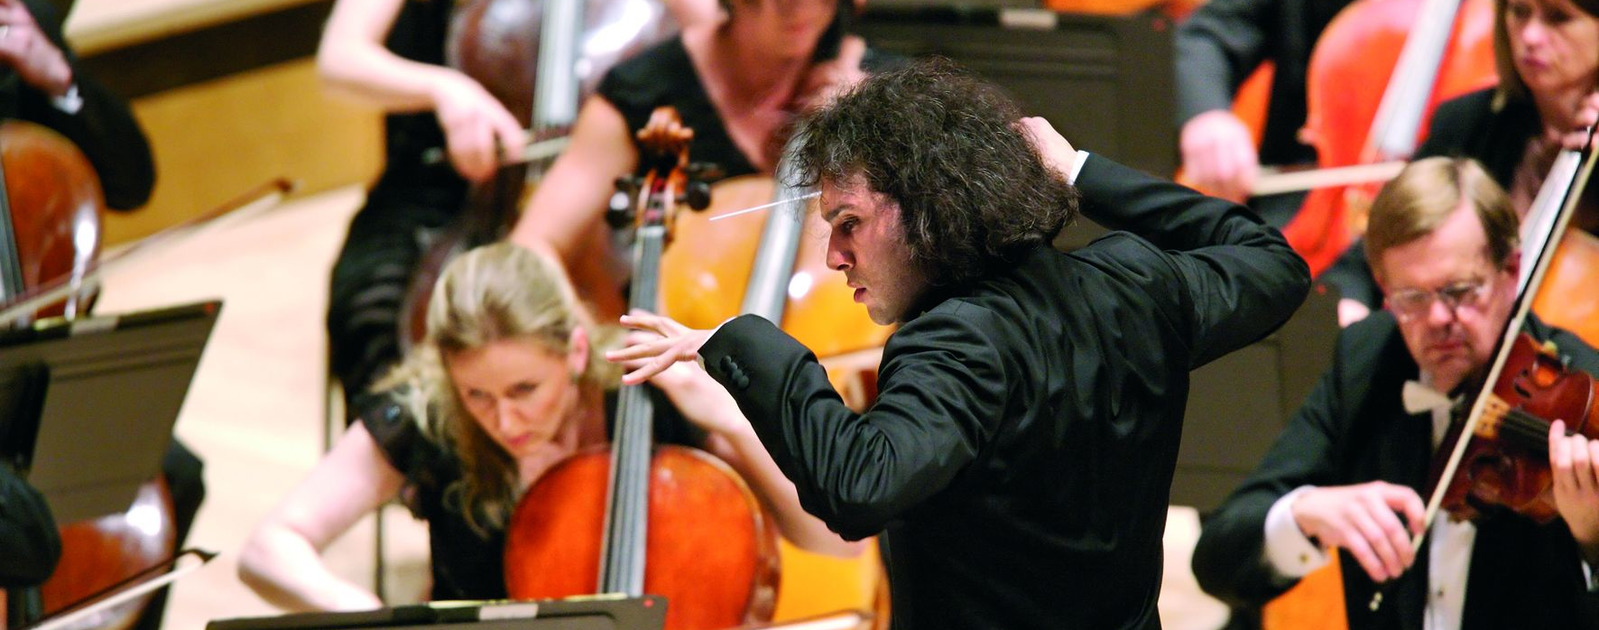 London Philharmonic Orchestra, conducted by Vladamir Jurowski, at the Royal Festival Hall re-opening concert series, 13-6-2007